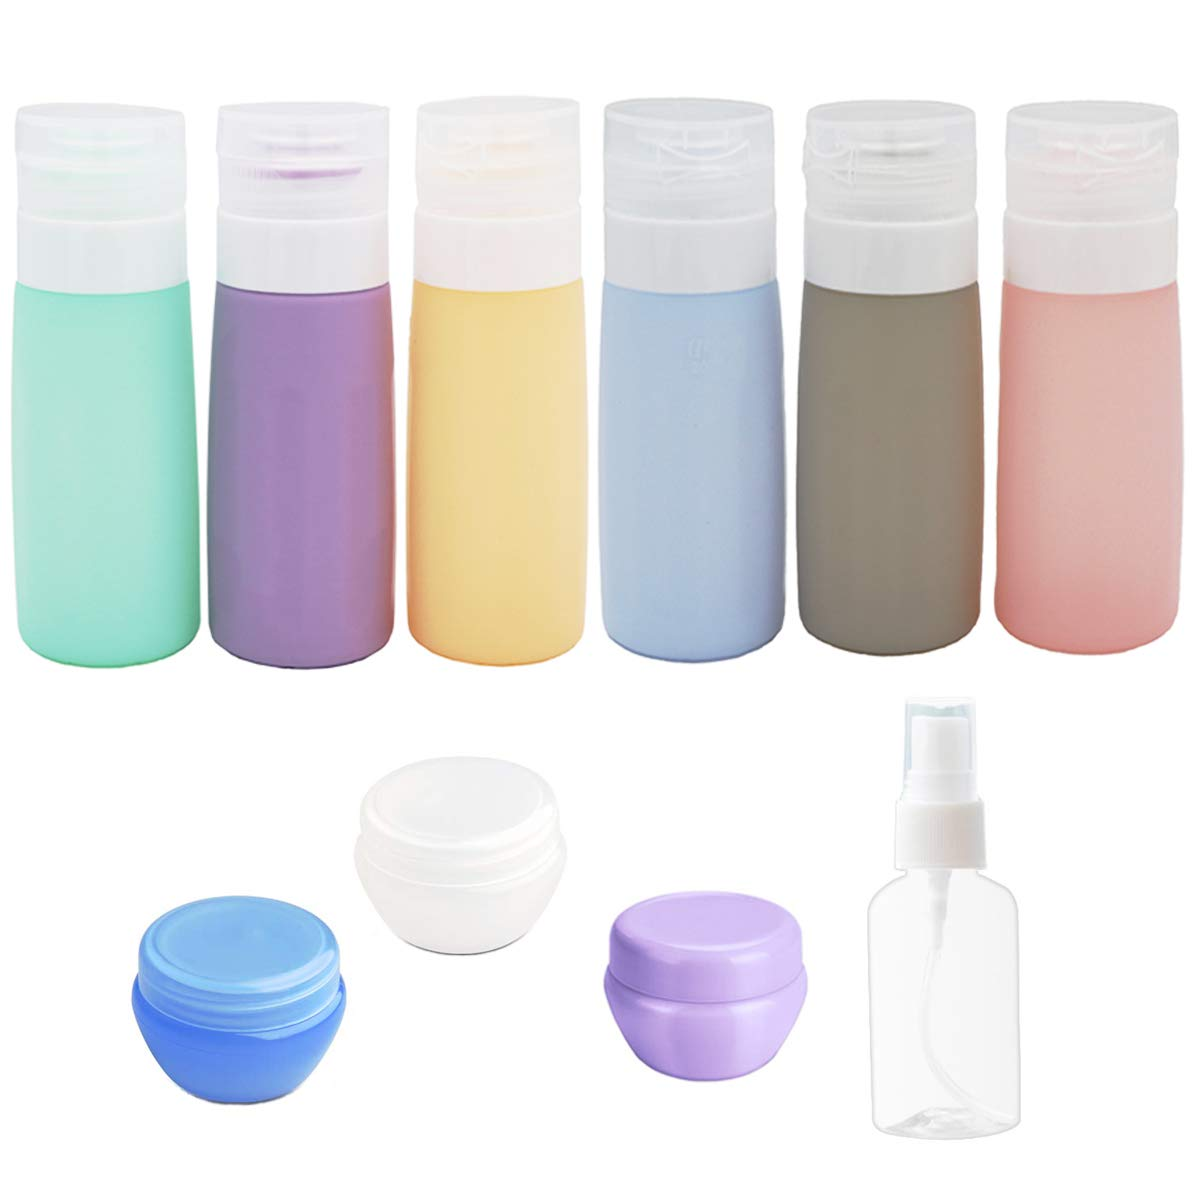 10Pack Travel Bottles Set -3Oz Leakproof Silicone Refillable Travel Containers, Squeezable Travel Tube Sets, TSA Approved Travel Size Bottles, Cosmetic Toiletry Containers for Shampoo Lotion Soap